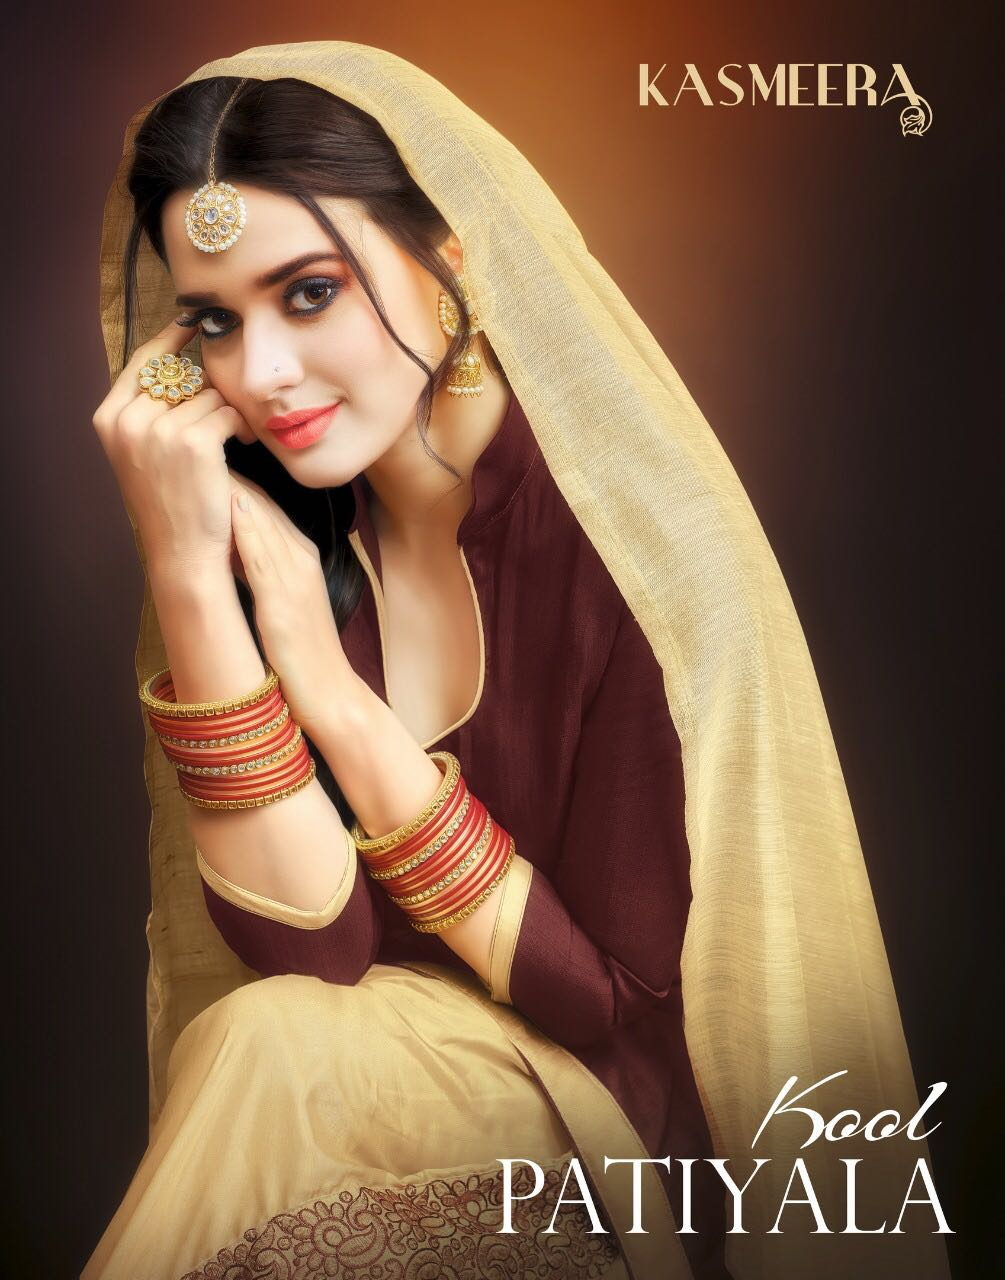 Kool patiyala By Kasmeera New Arrival Patiyala suit Collections